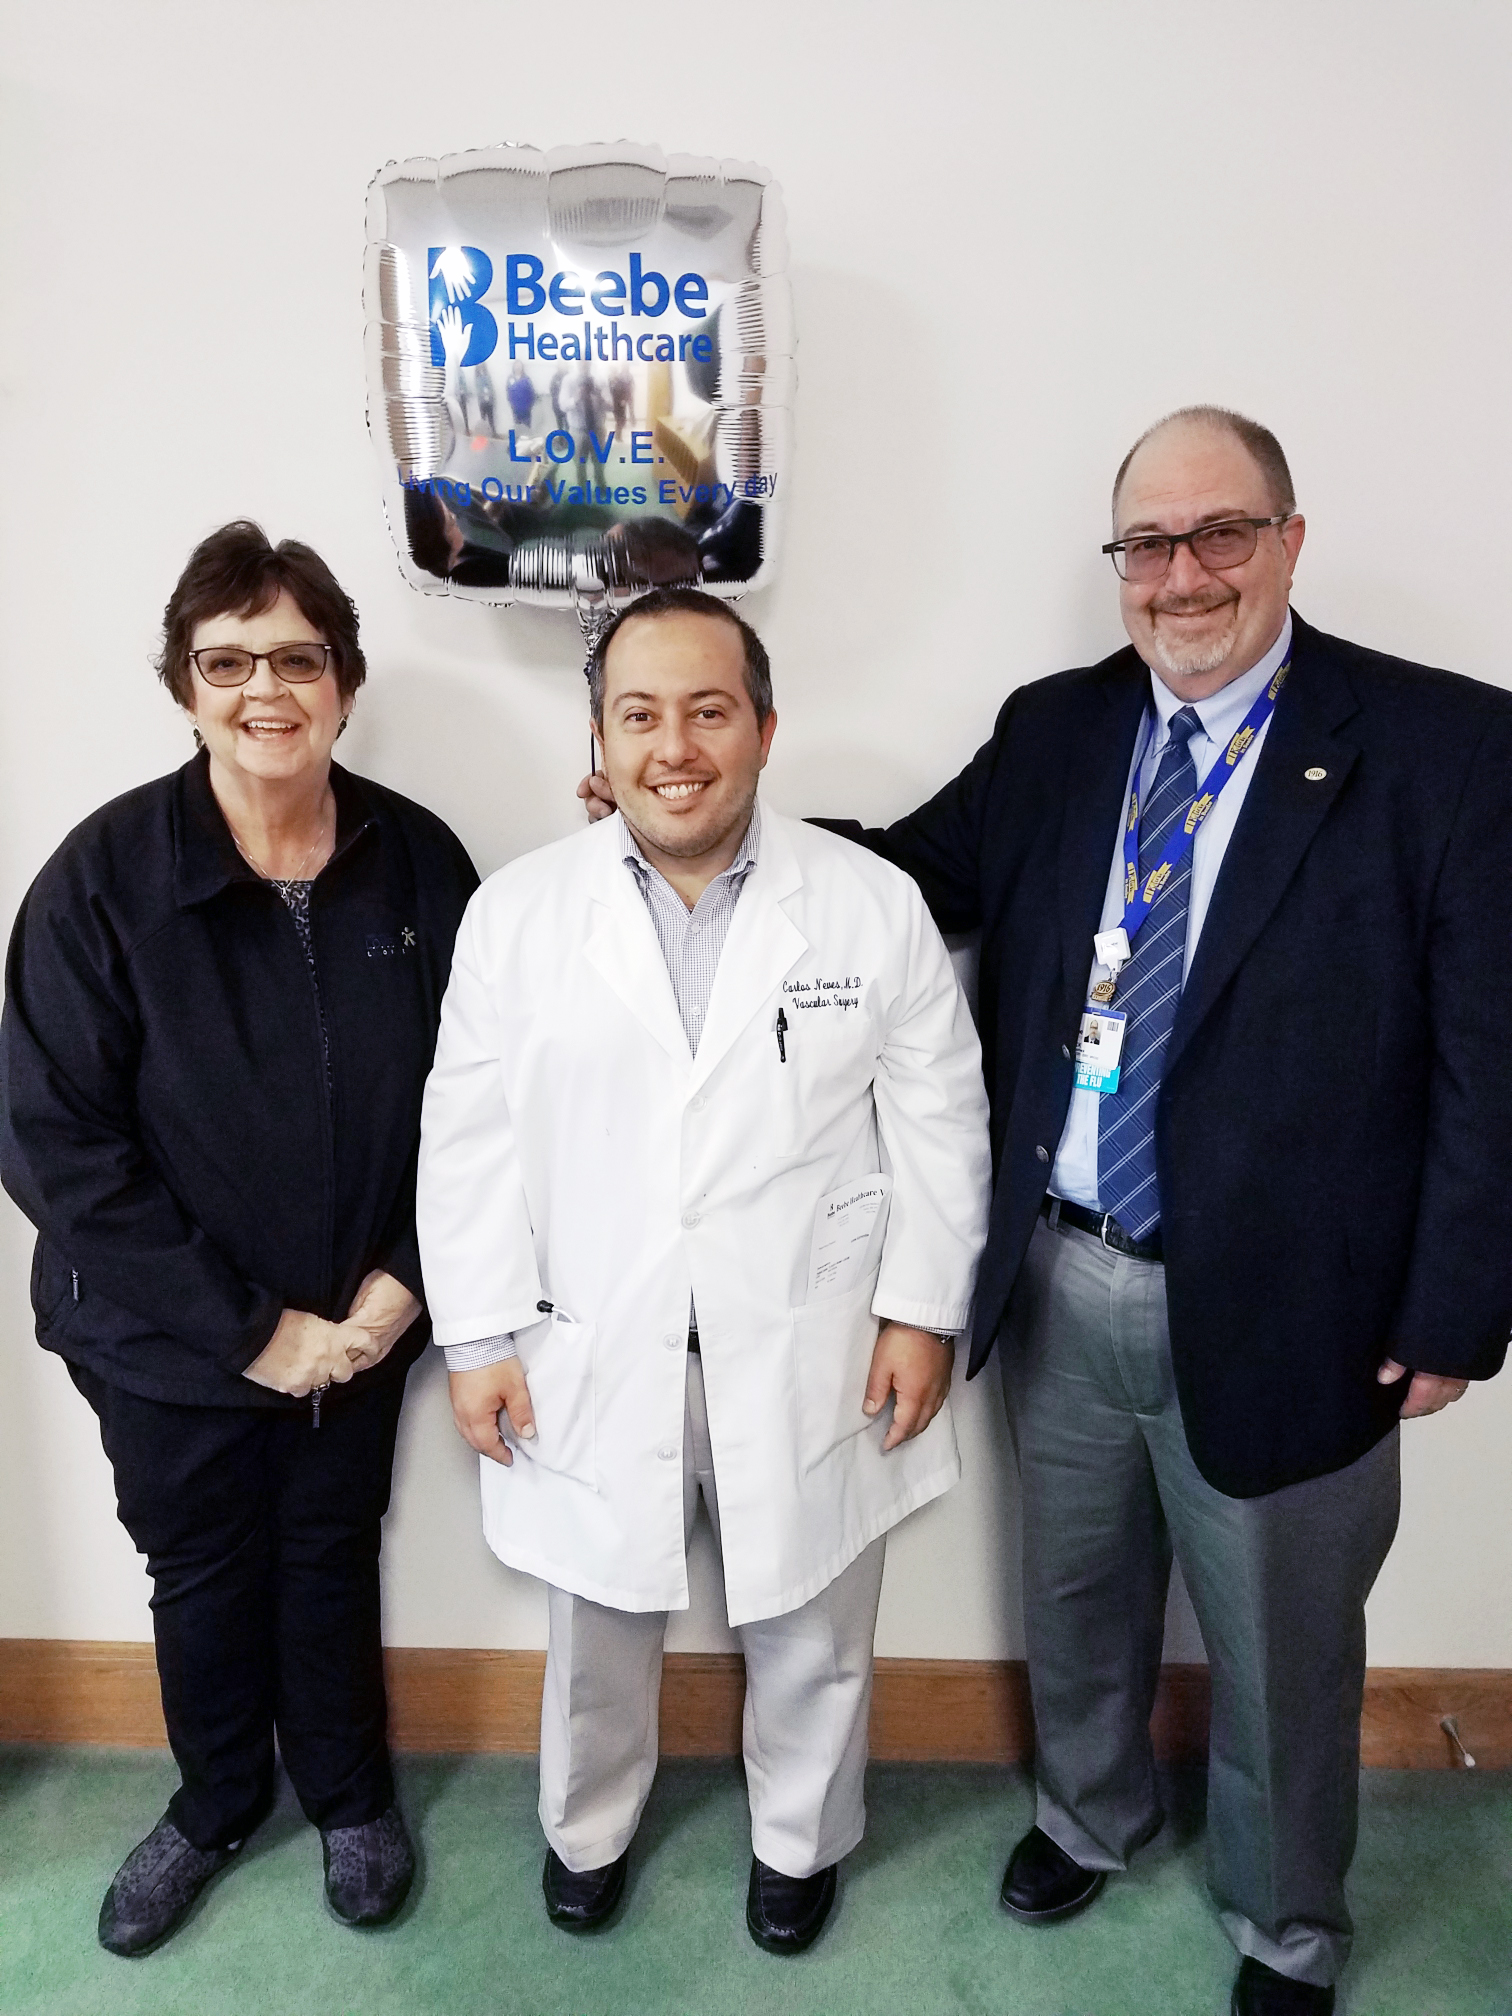 Carlos Neves, MD, Vascular Surgeon at Beebe Healthcare, is the recipient of Beebe's November 2019 L.O.V.E. Letter. Also pictured are Catherine Walls, Patient Experience Coordinator, and Rick Schaffner, Interim CEO, Executive Vice President, Chief Operatin